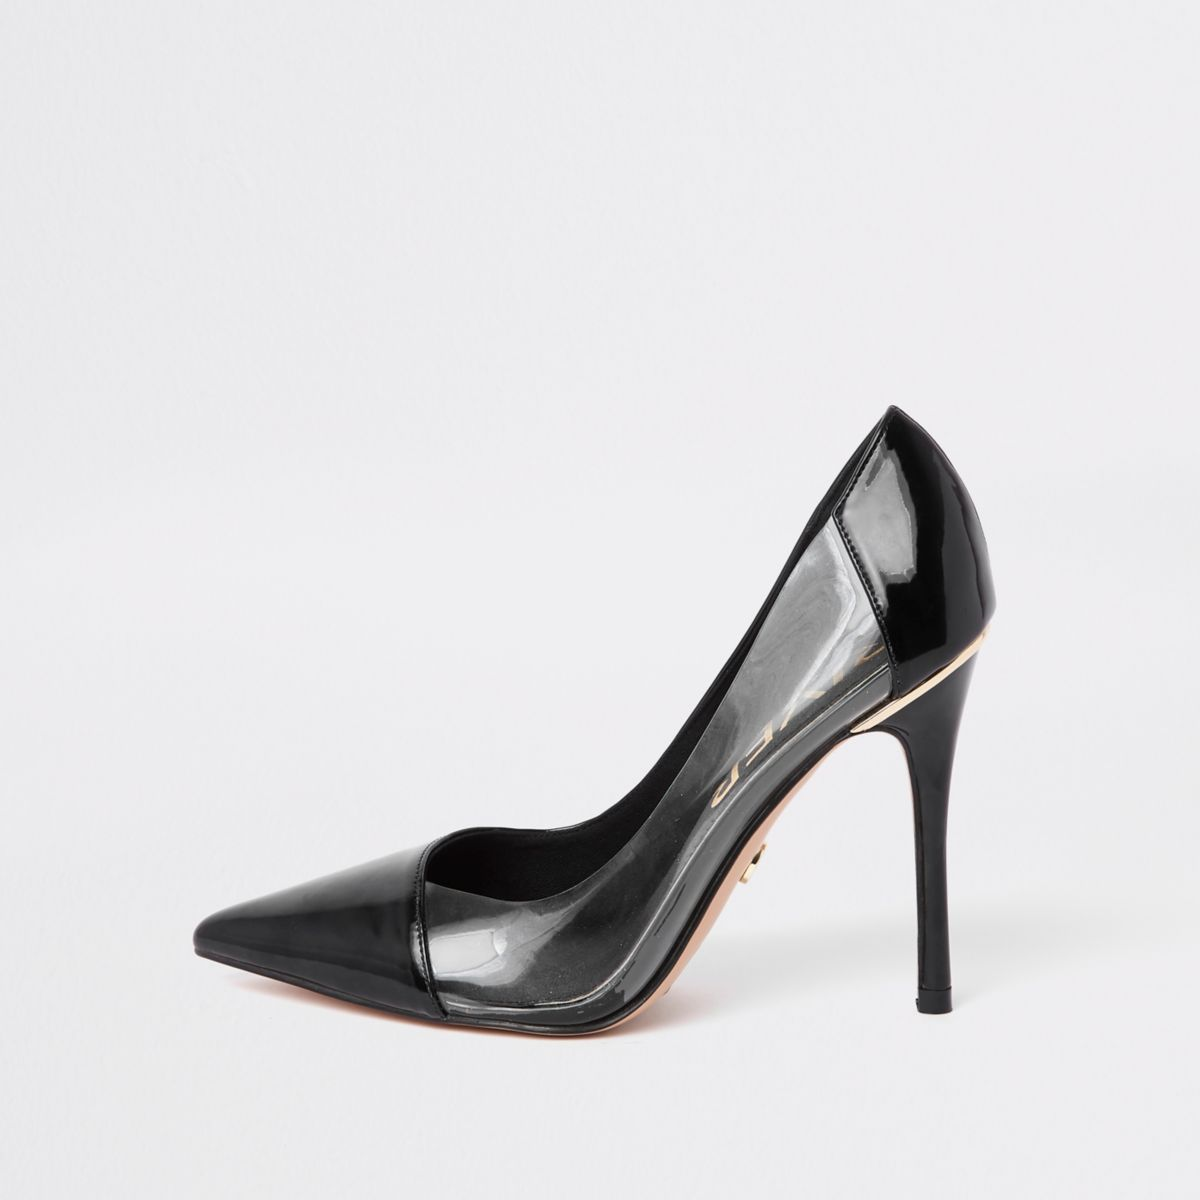 Black perspex side pumps